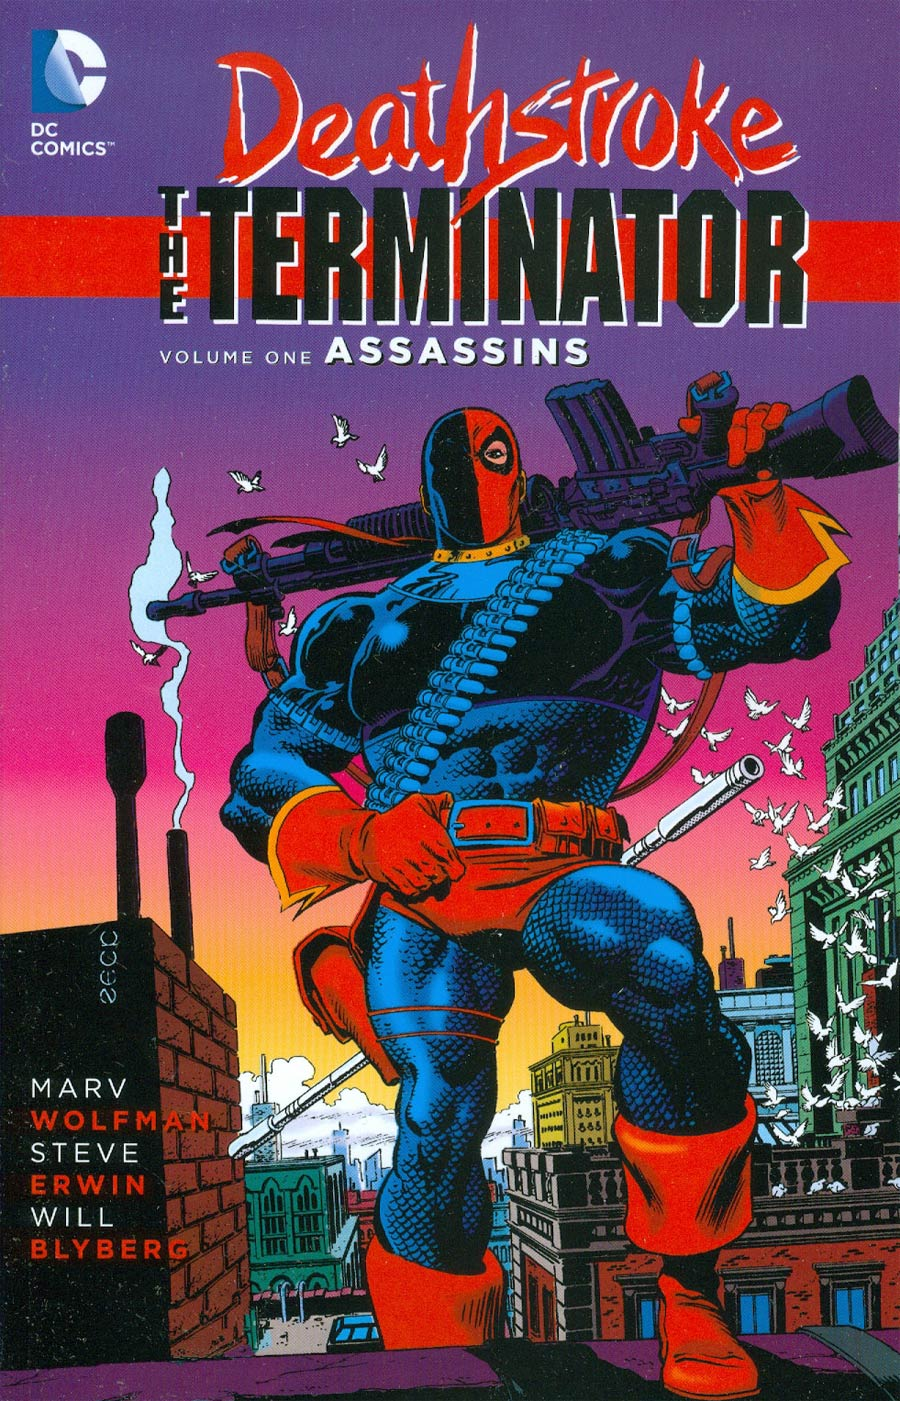 Deathstroke The Terminator Vol 1 Assassins TP